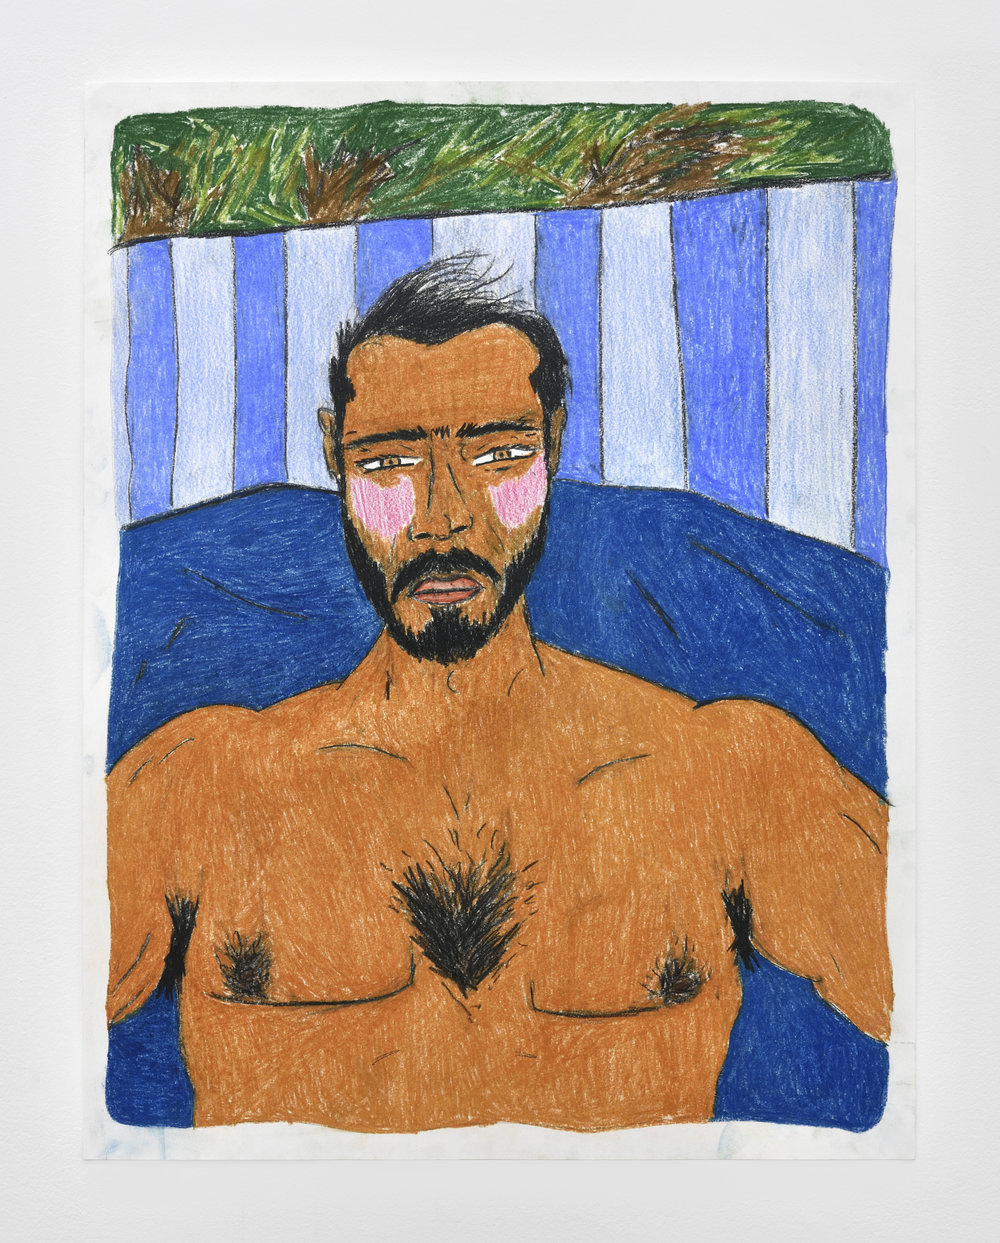 Bed work  2017-2018 color pencil on paper 71 x 55 cm - 27 15/16 x 21 21/32 inches